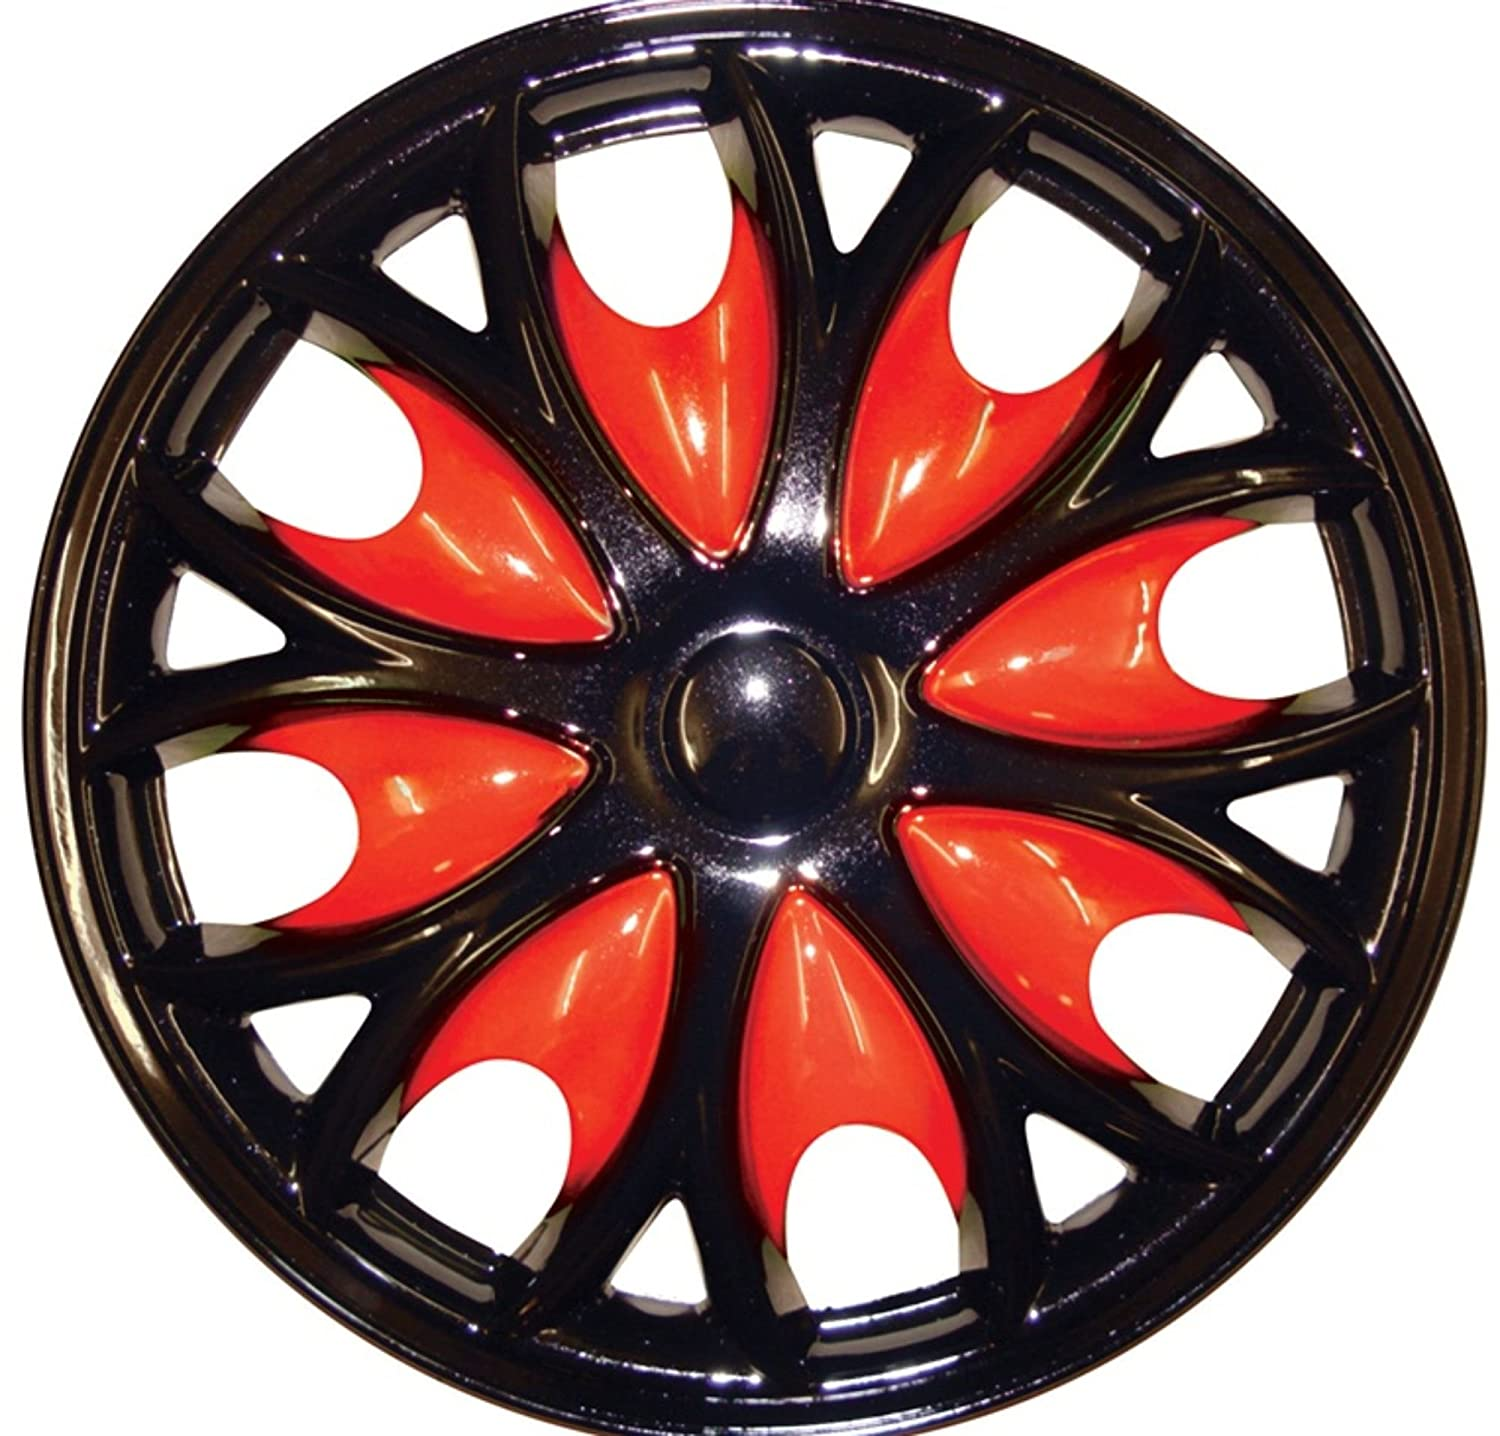 WLW2-F104 XtremeAuto Black Silver Blue Red Wheel Trim Set x 4 15 BLACK WITH BLUE PIN STRIPE WHEEL TRIM